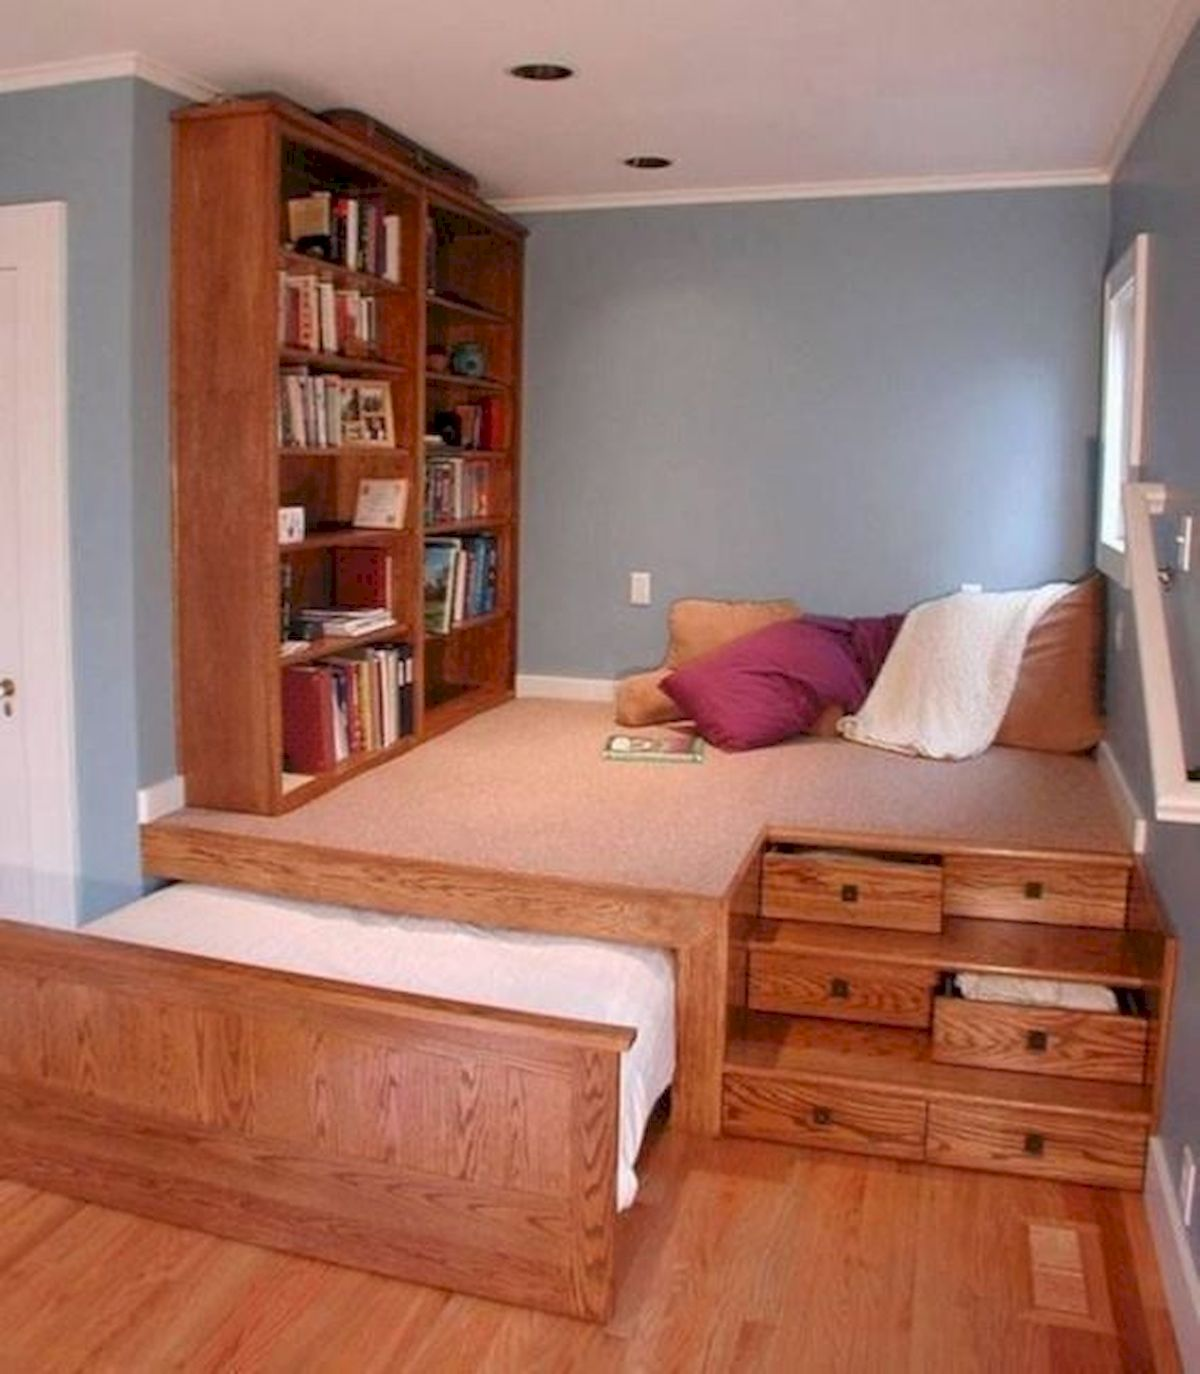 60 Brilliant Space Saving Ideas For Small Bedroom (54)